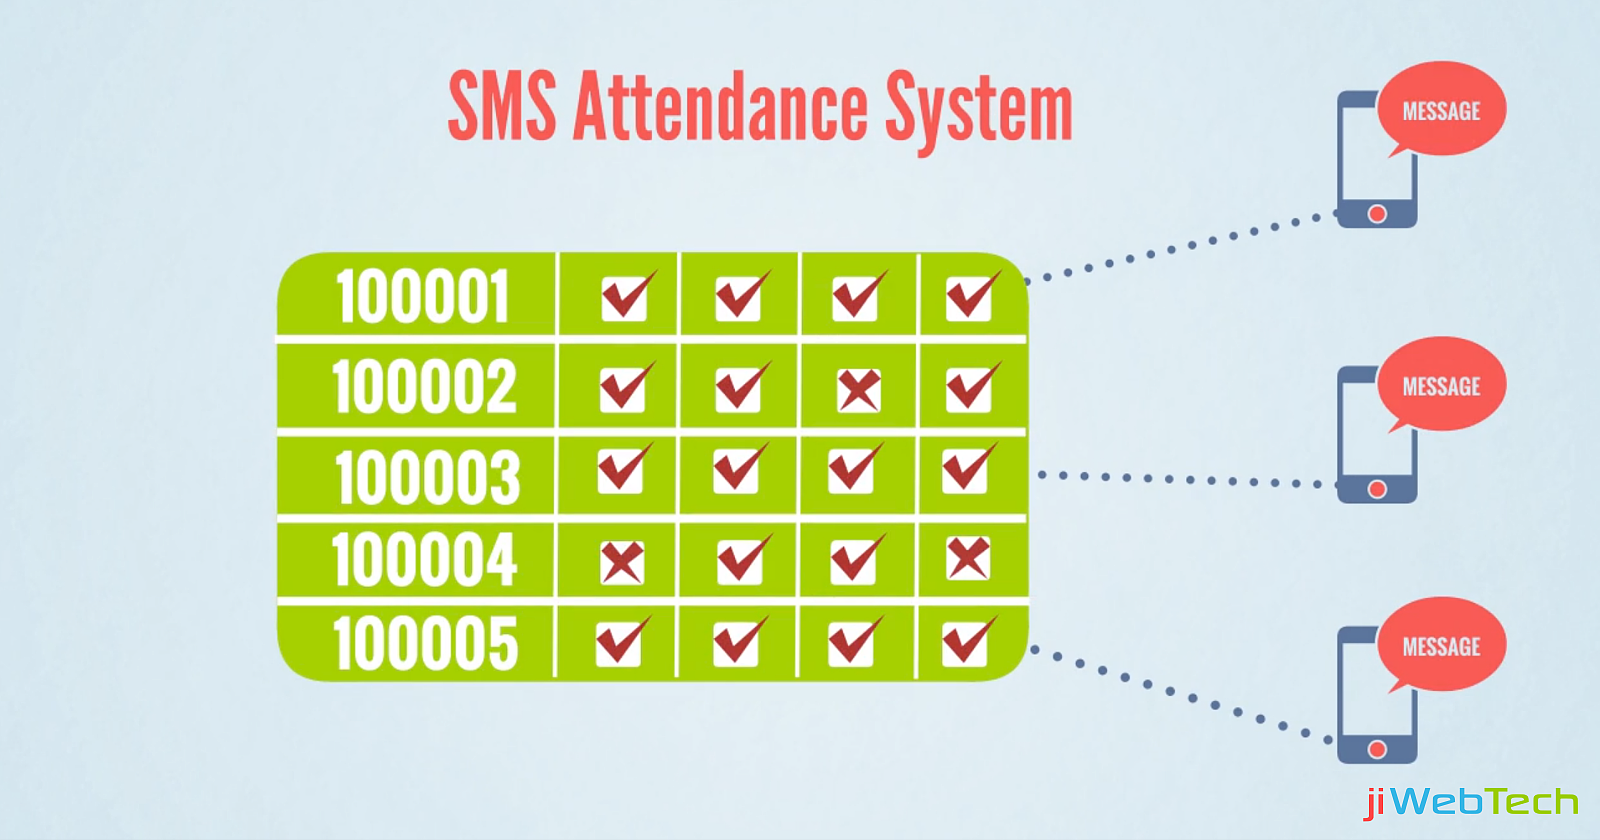 Implementing School SMS Attendance System